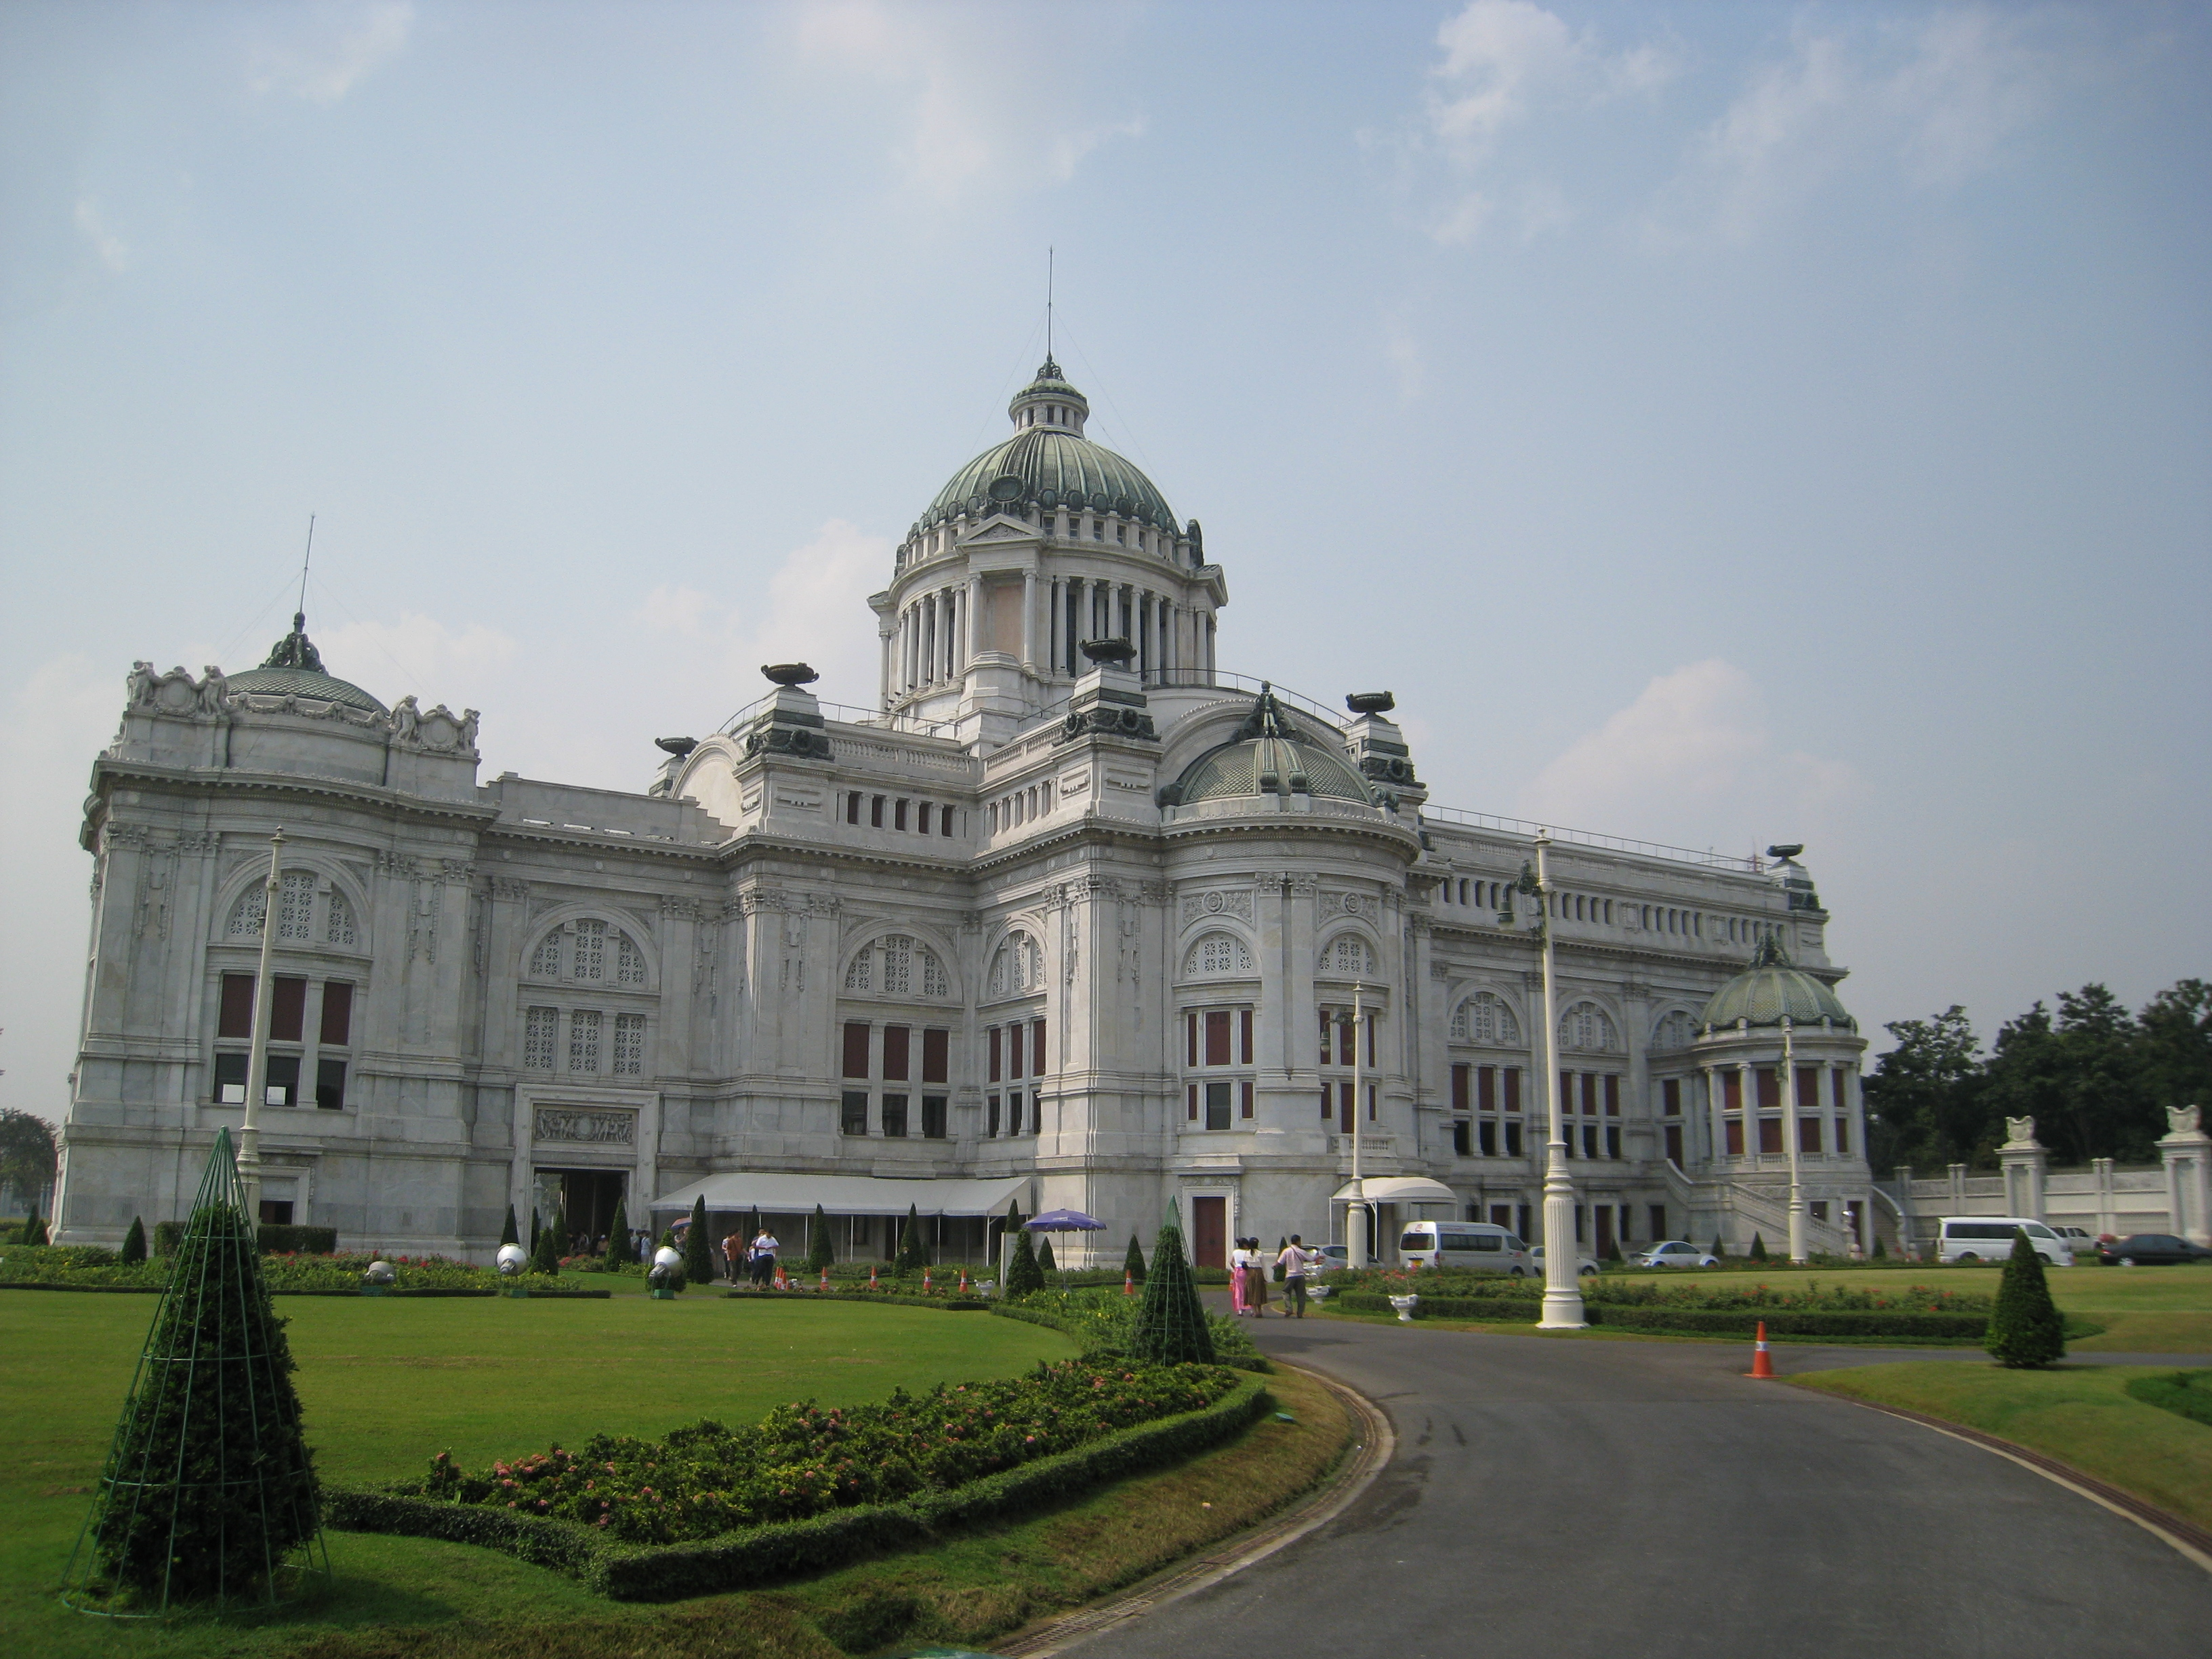 File:Ananta Samakhom Throne Hall Bangkok.jpg - Wikimedia Commons